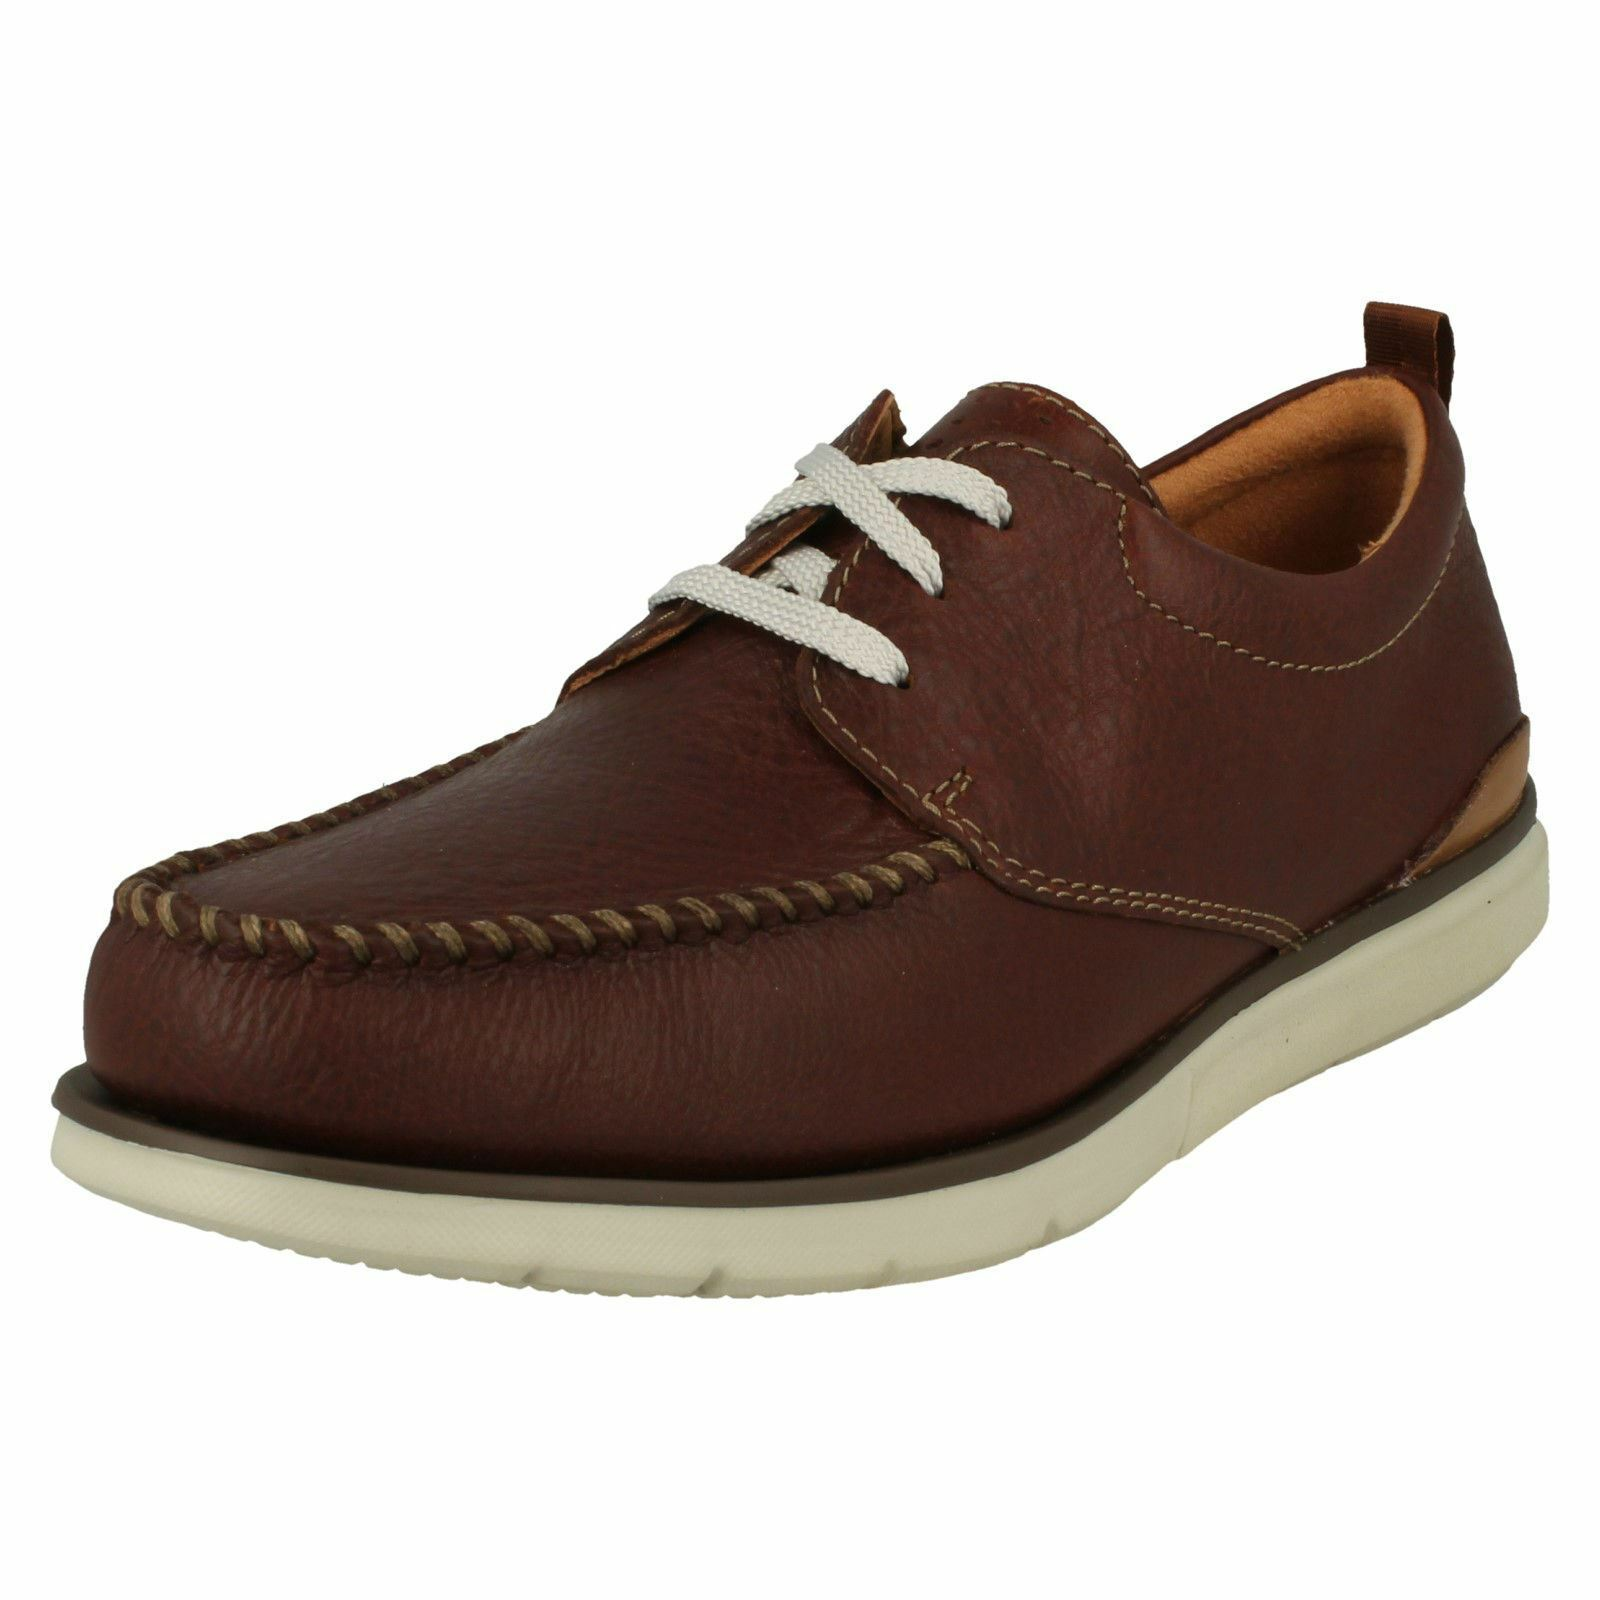 Mens Mens Mens Clarks Casual Lace Up Shoes Edgewood Mix. 55bea7